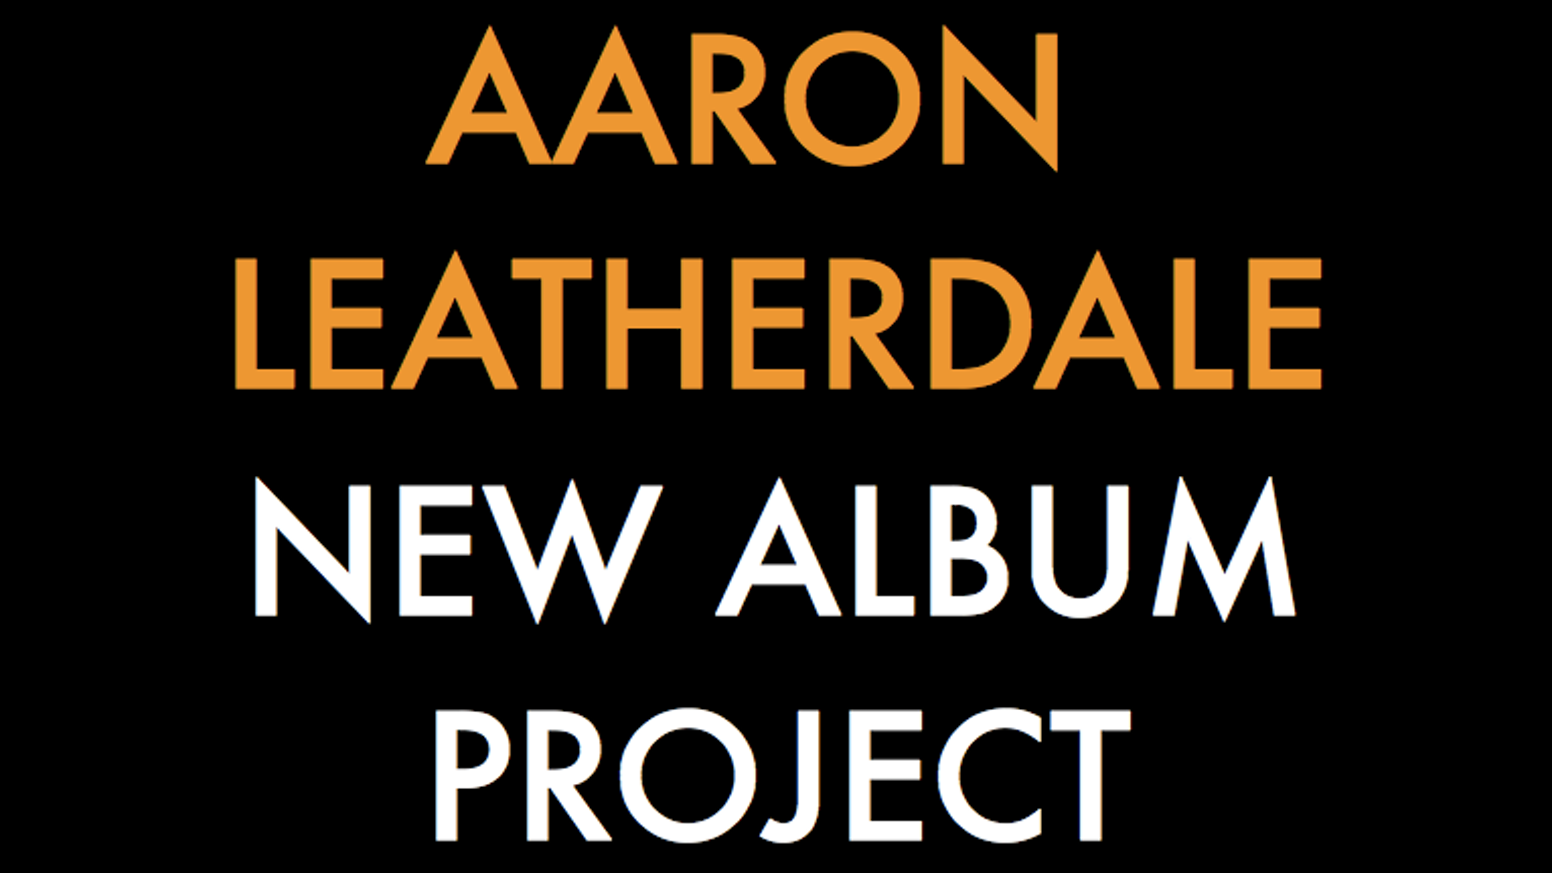 aaron leatherdale is making an album by aaron leatherdale your